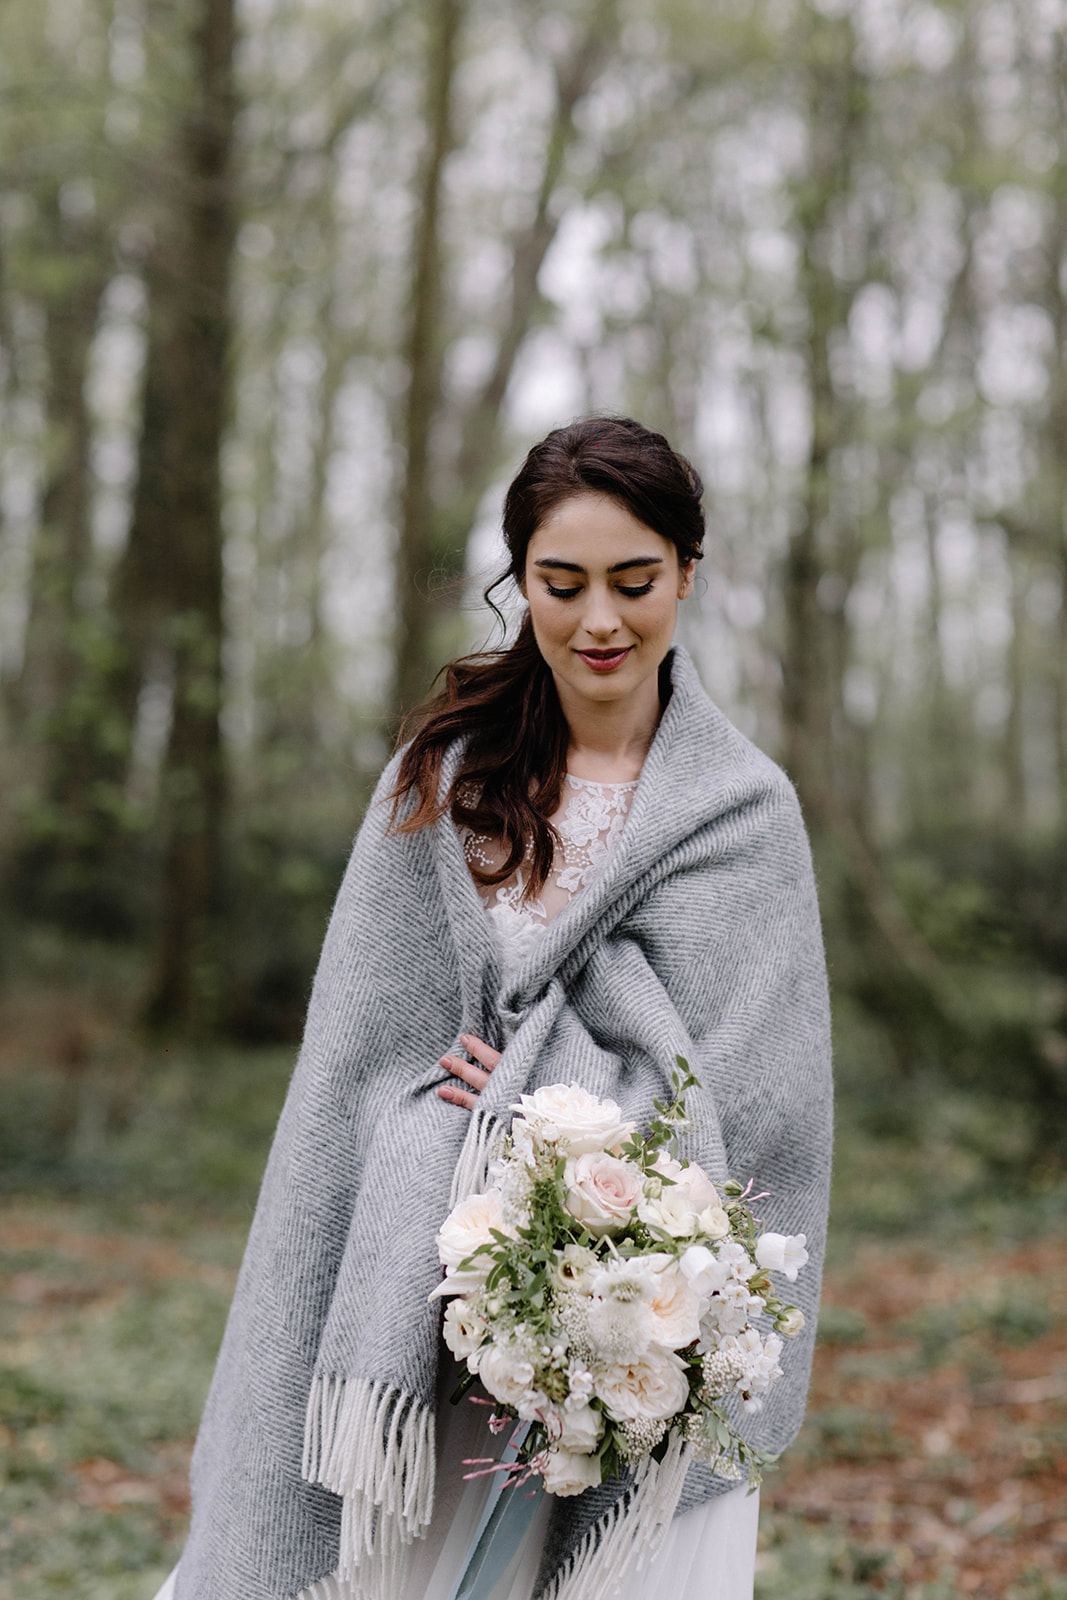 Winter wedding ideas - how to plan your winter wedding | Written by Mirabella Weddings, top UK wedding planner